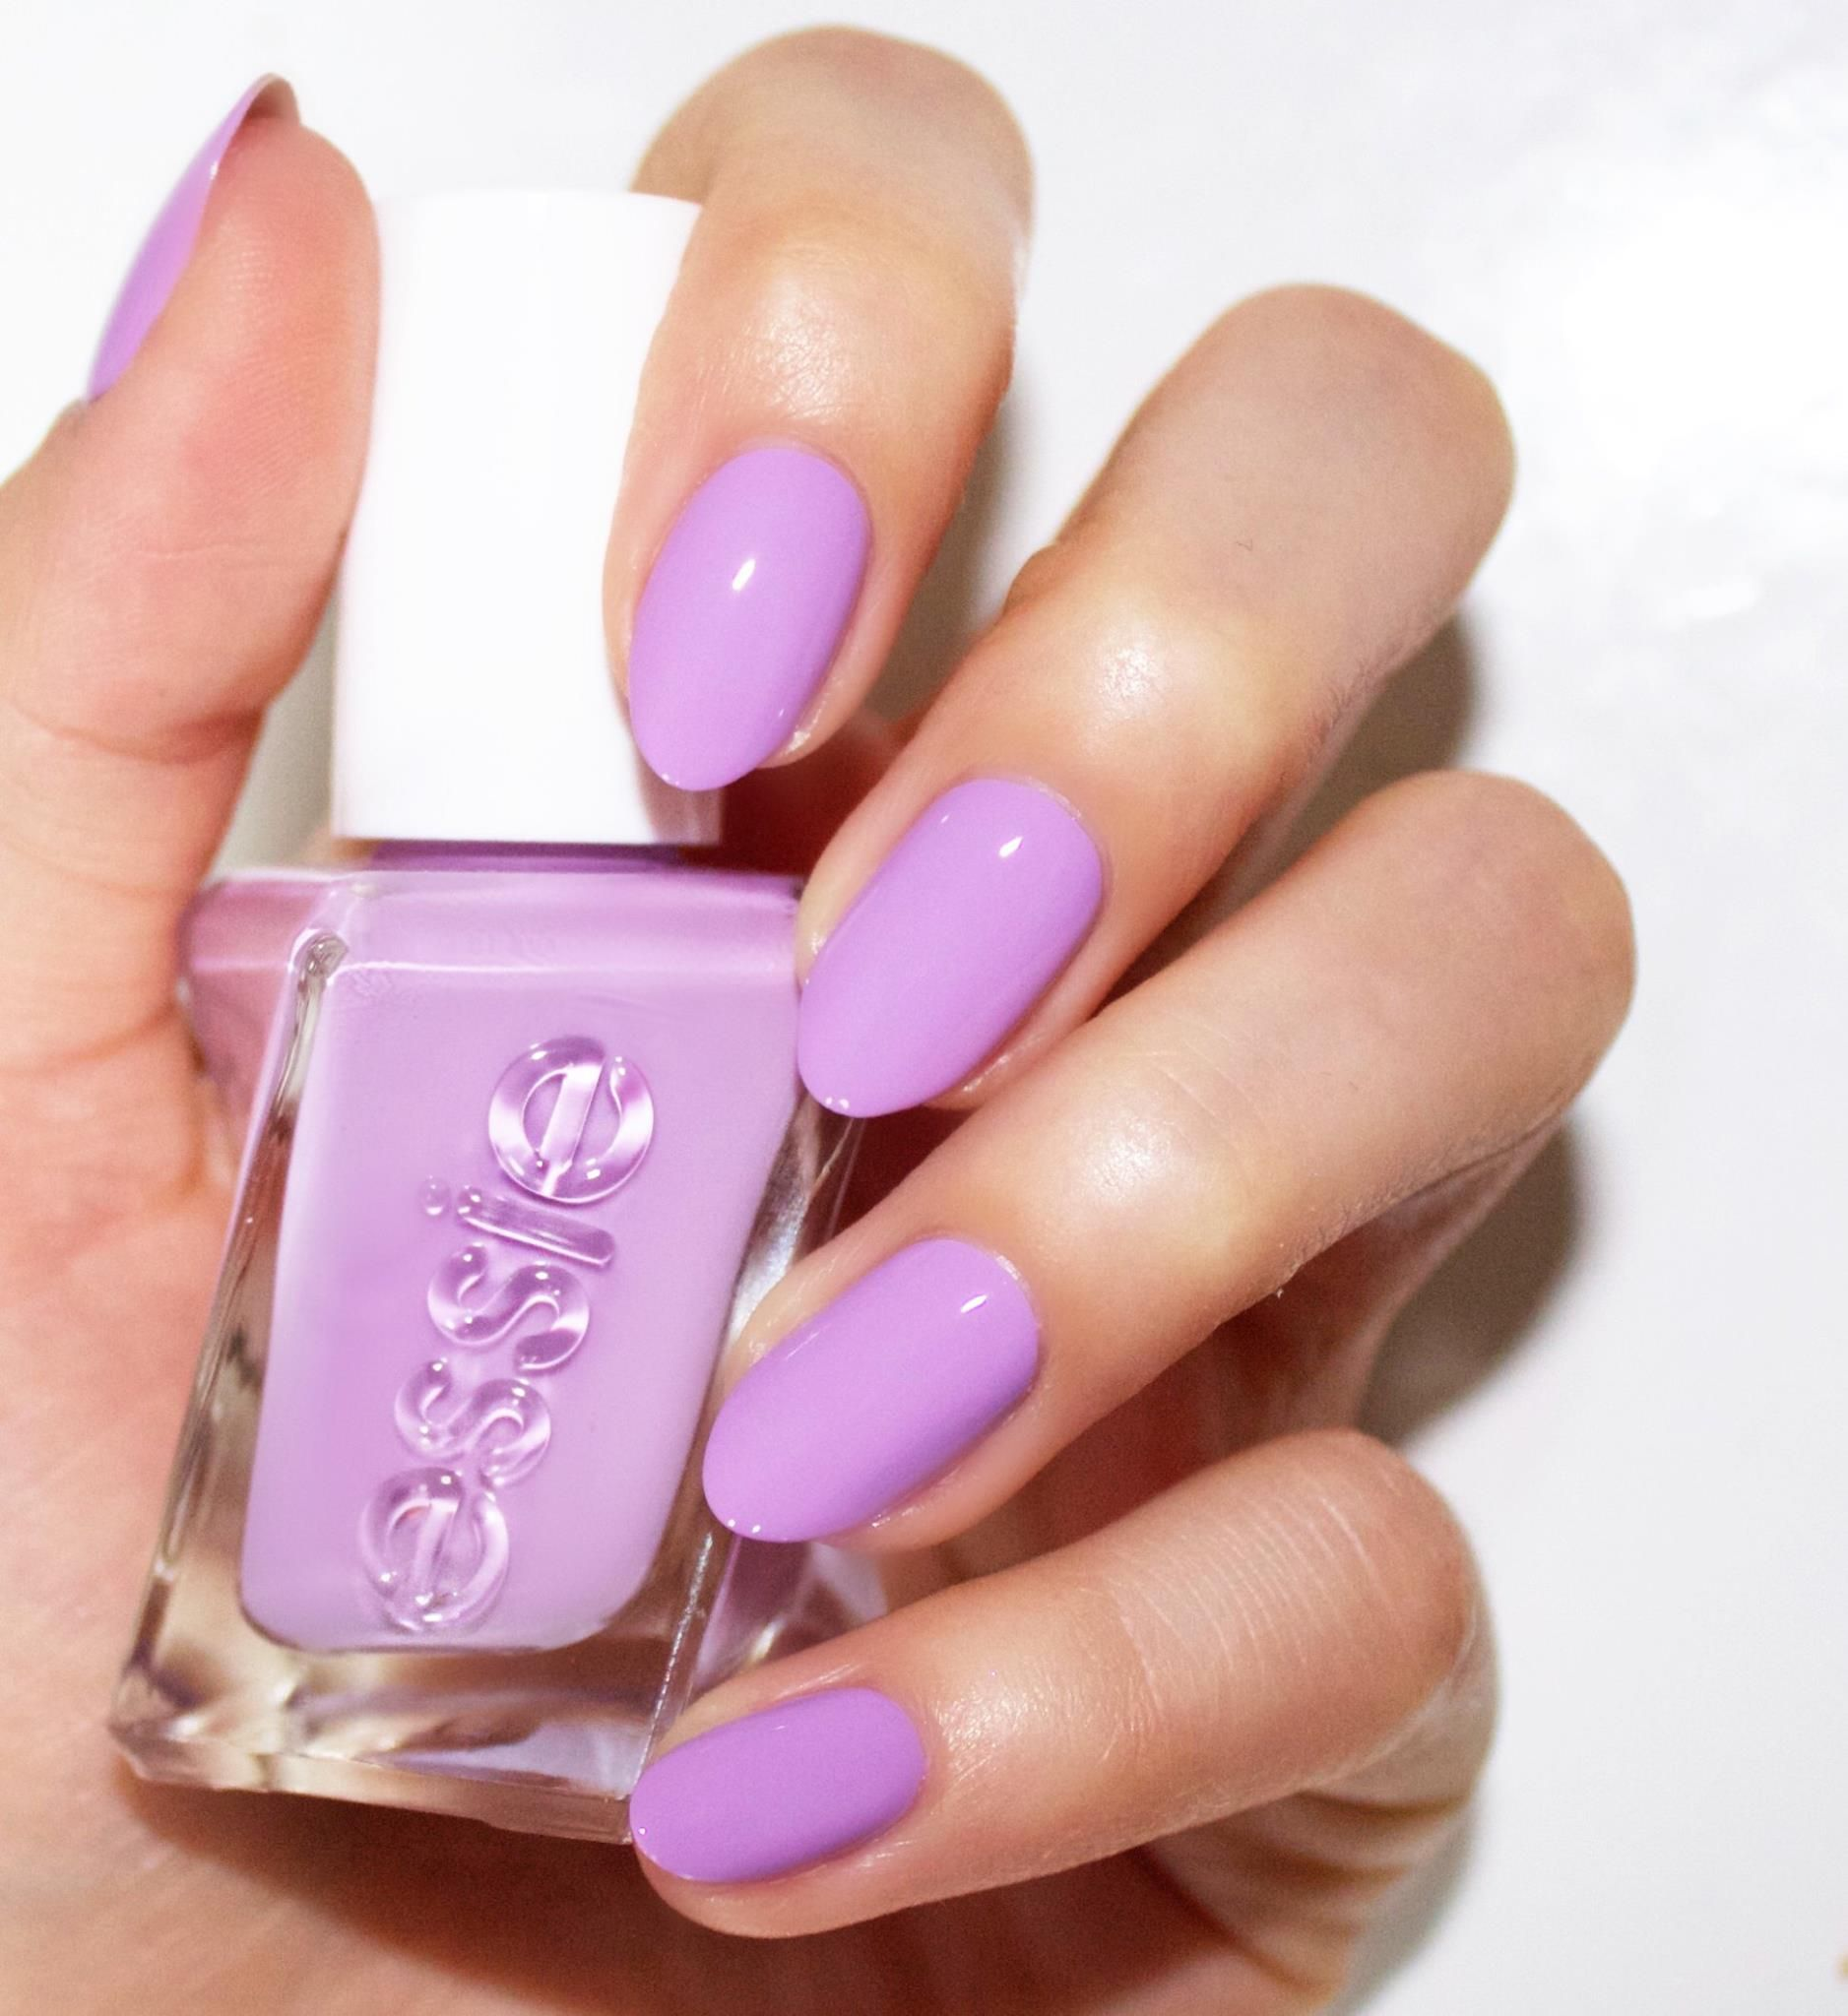 Essie Dress Call Like what you see ? Like it ❤, pin it 📌, and ...